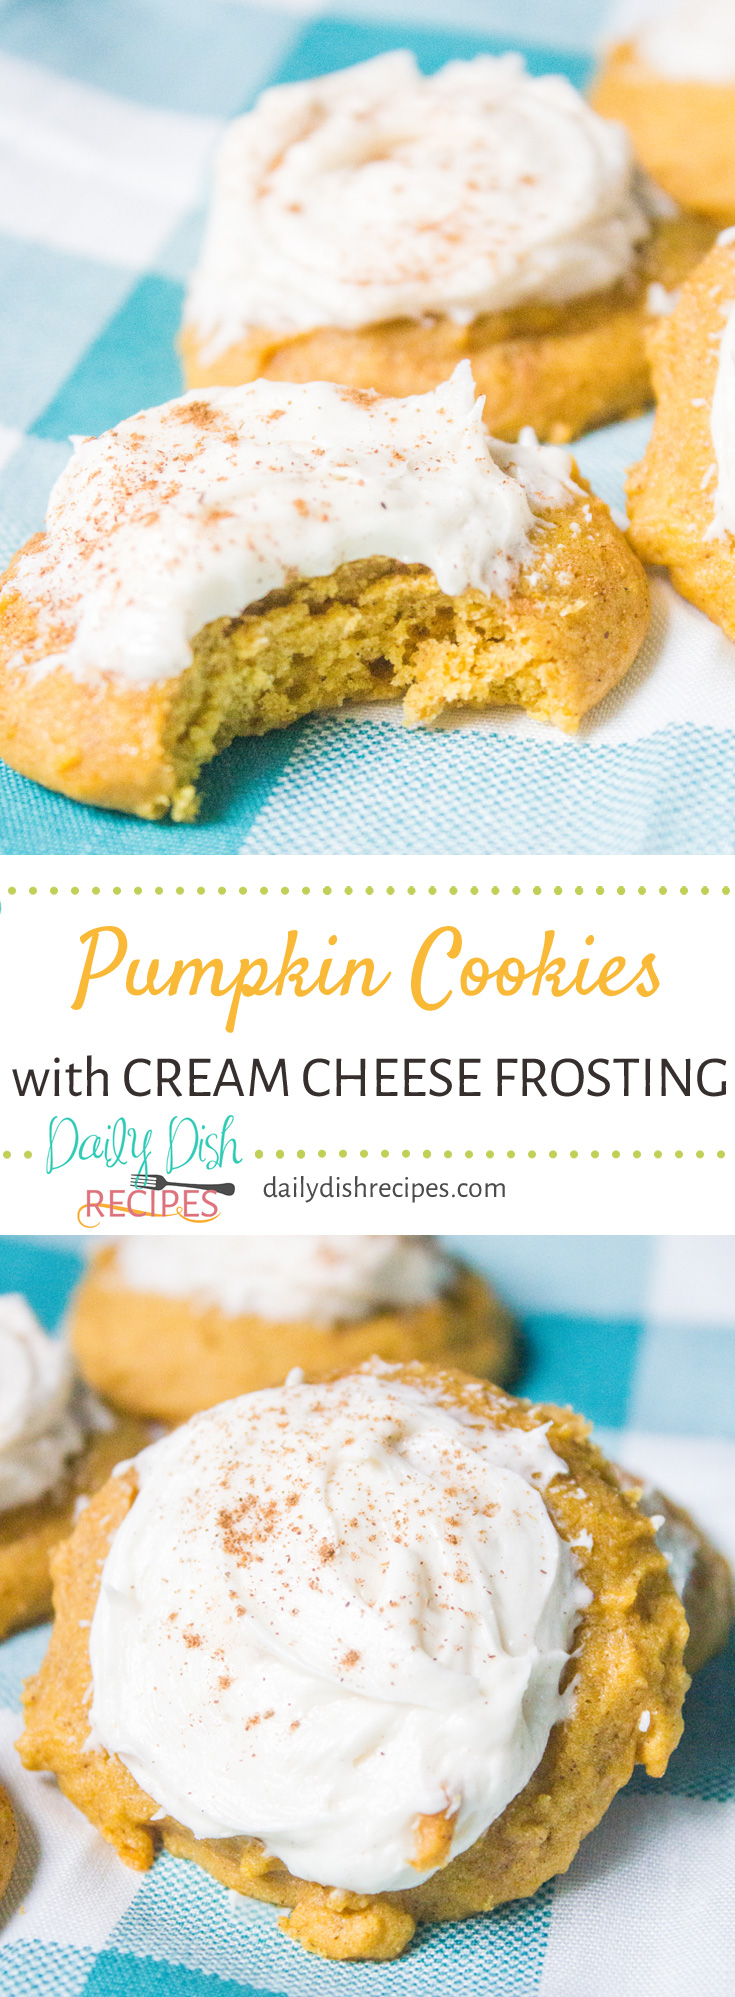 Pumpkin Cookies with Cream Cheese Frosting | Daily Dish Recipes